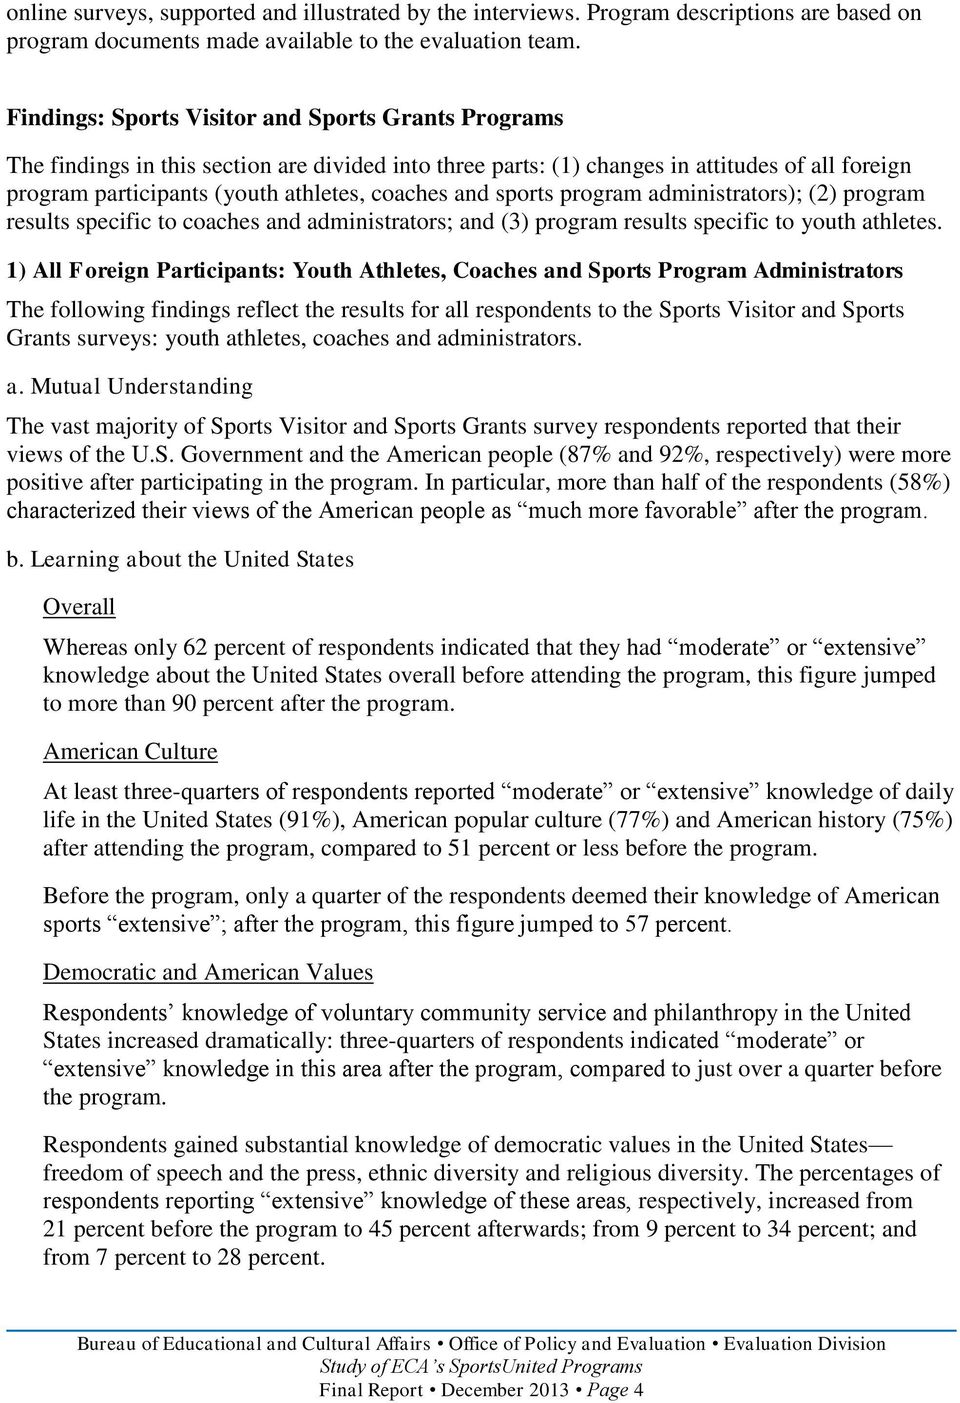 and sports program administrators); (2) program results specific to coaches and administrators; and (3) program results specific to youth athletes.